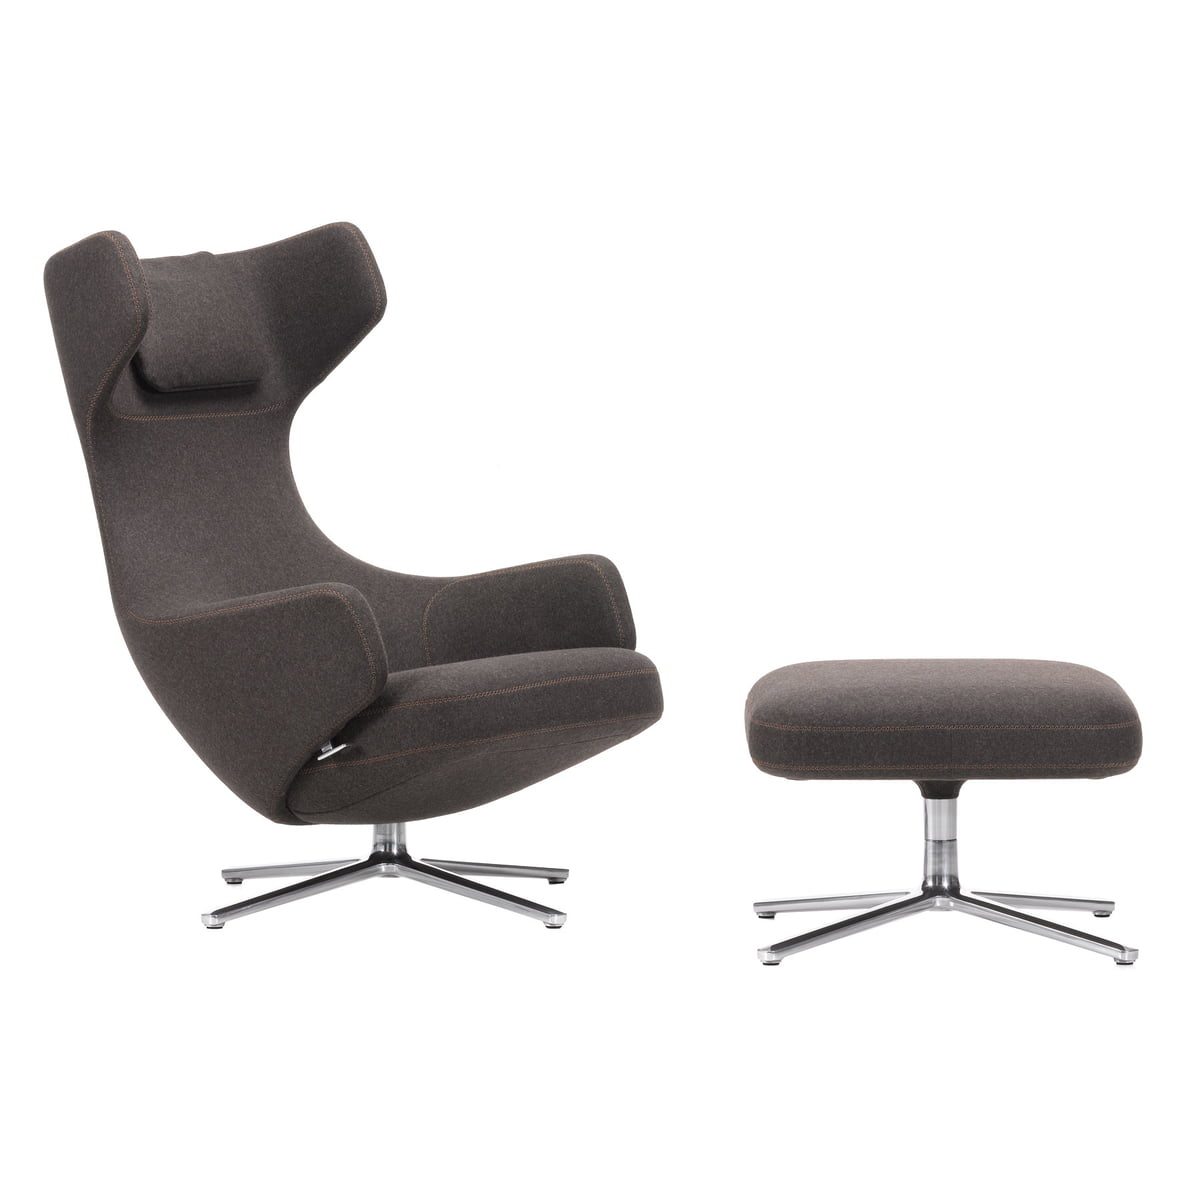 Grand repos sessel von vitra shop for Sessel vitra